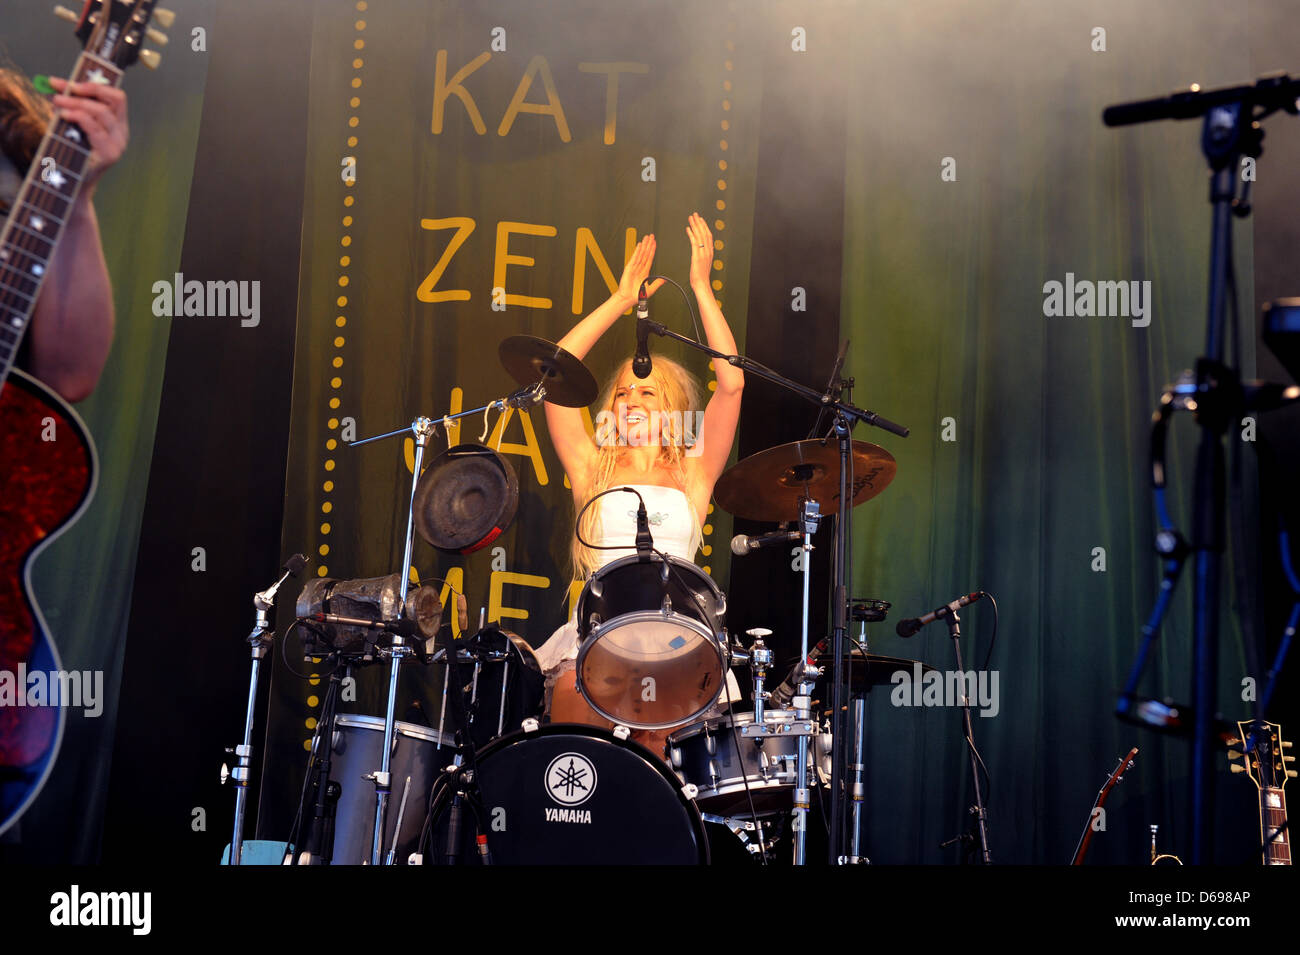 Solveig Heilo of the Norwegian  folk-rock band Katzenjammer performs on stage in Cologne, Germany, 22 June 2012. - Stock Image